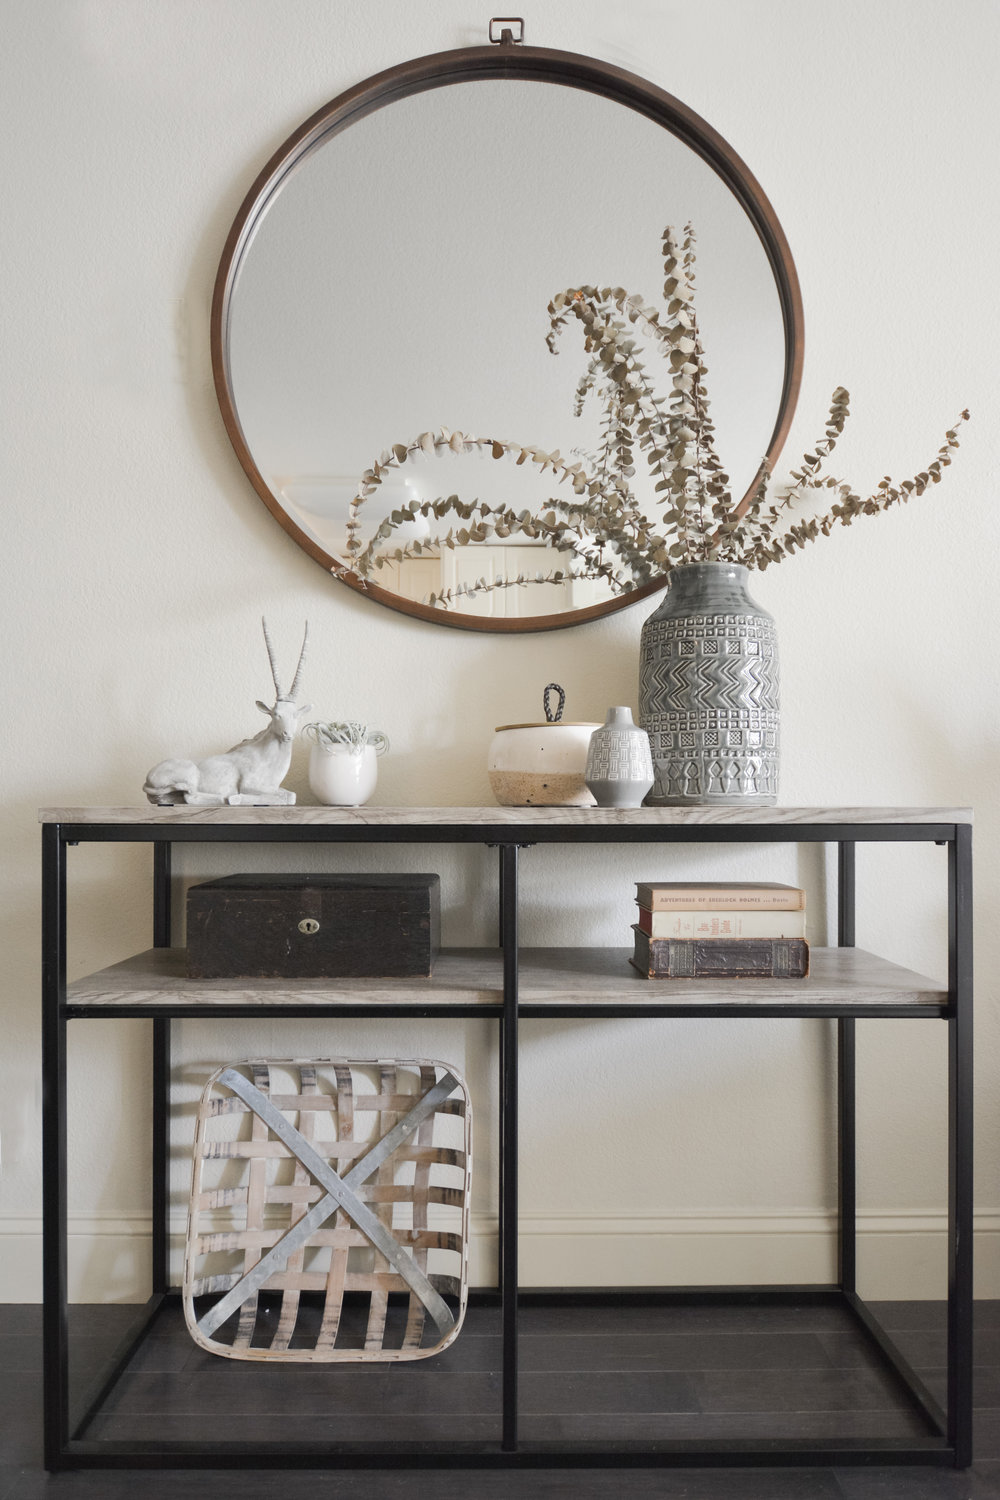 Angela Grace Design // Union Living Room // San Francisco and SF Bay Area Interior Designer, Decorator